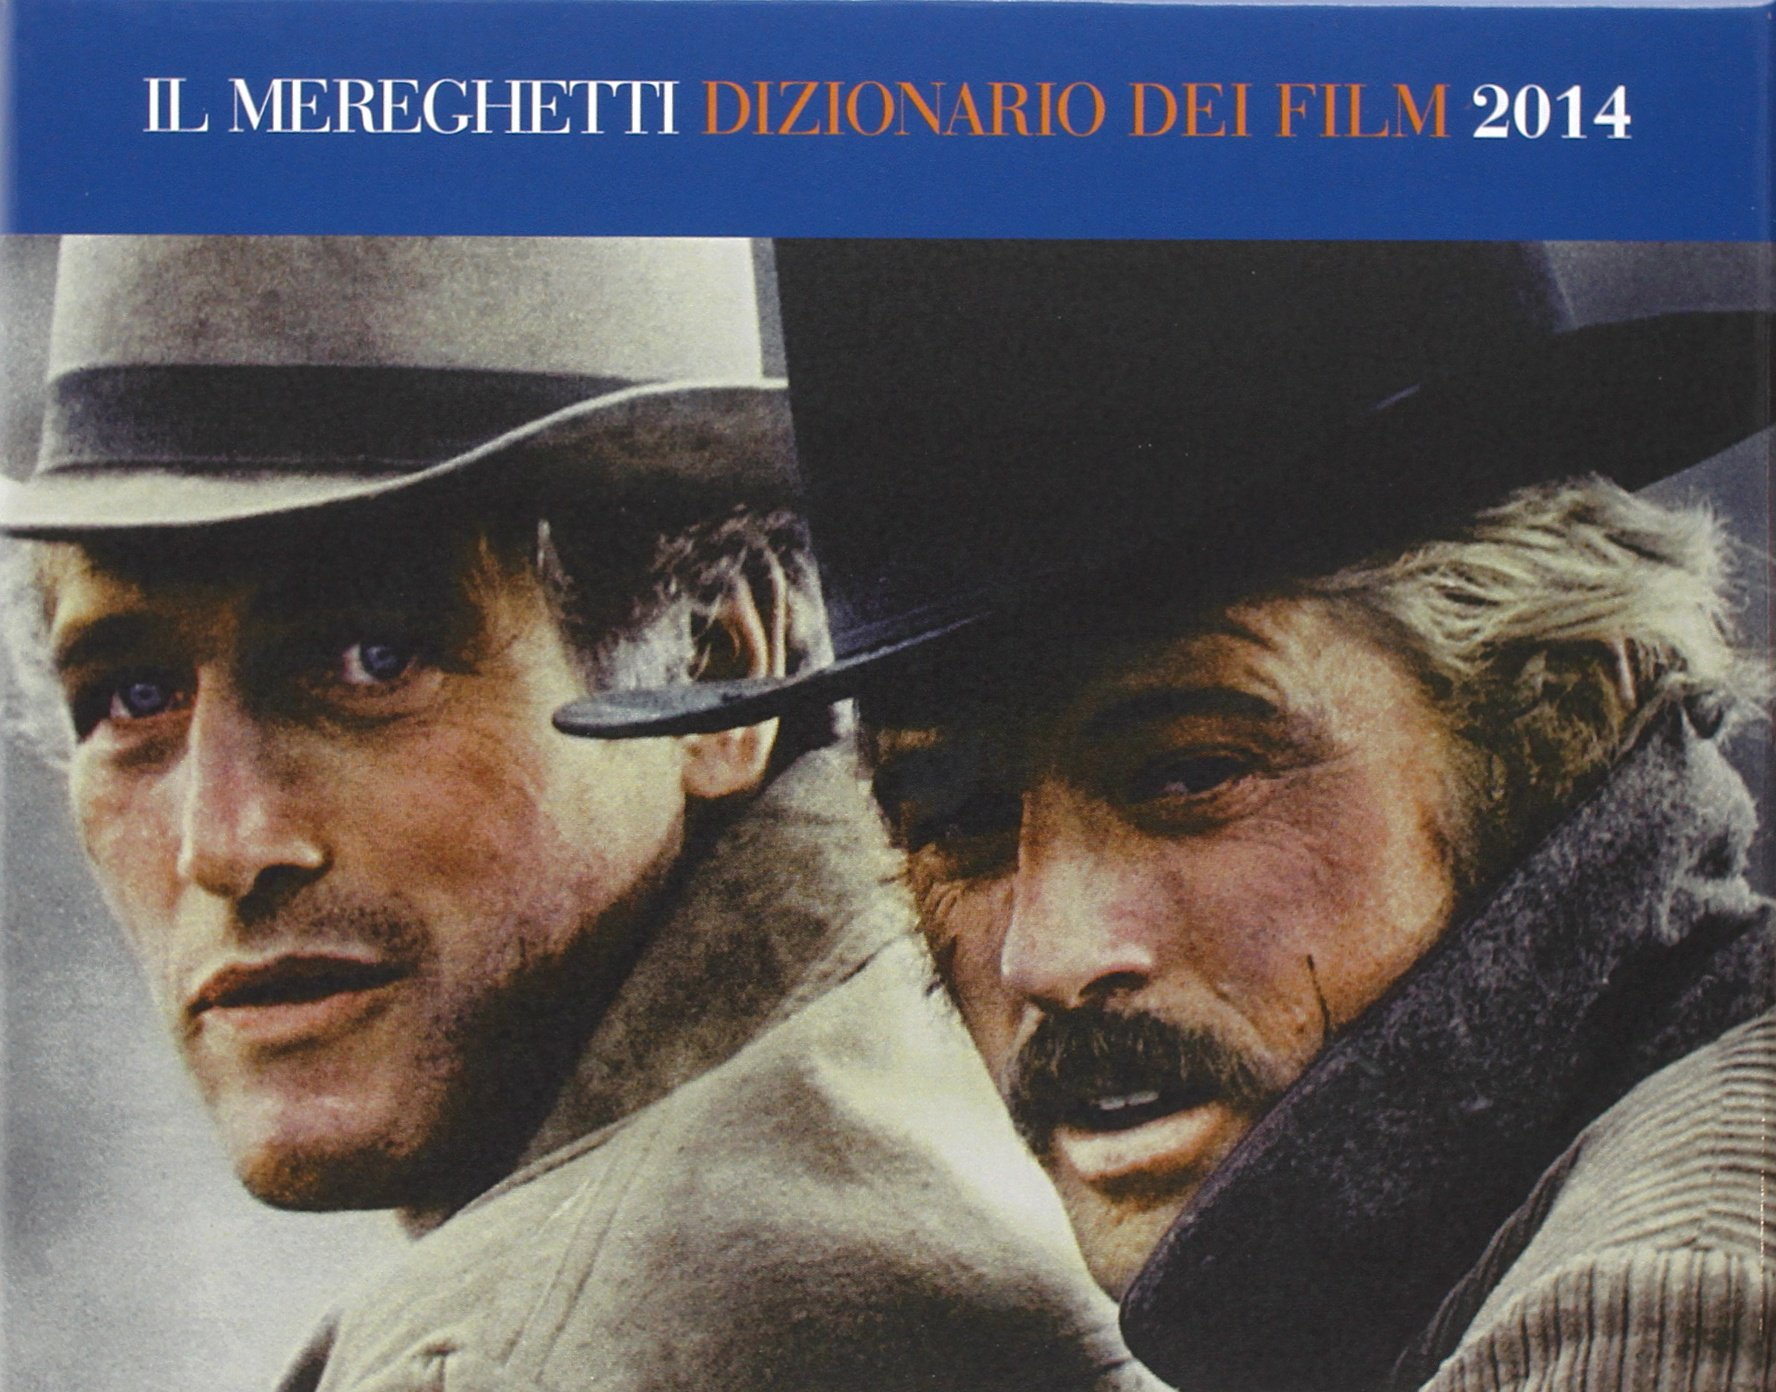 DIZIONARIO MEREGHETTI EBOOK DOWNLOAD